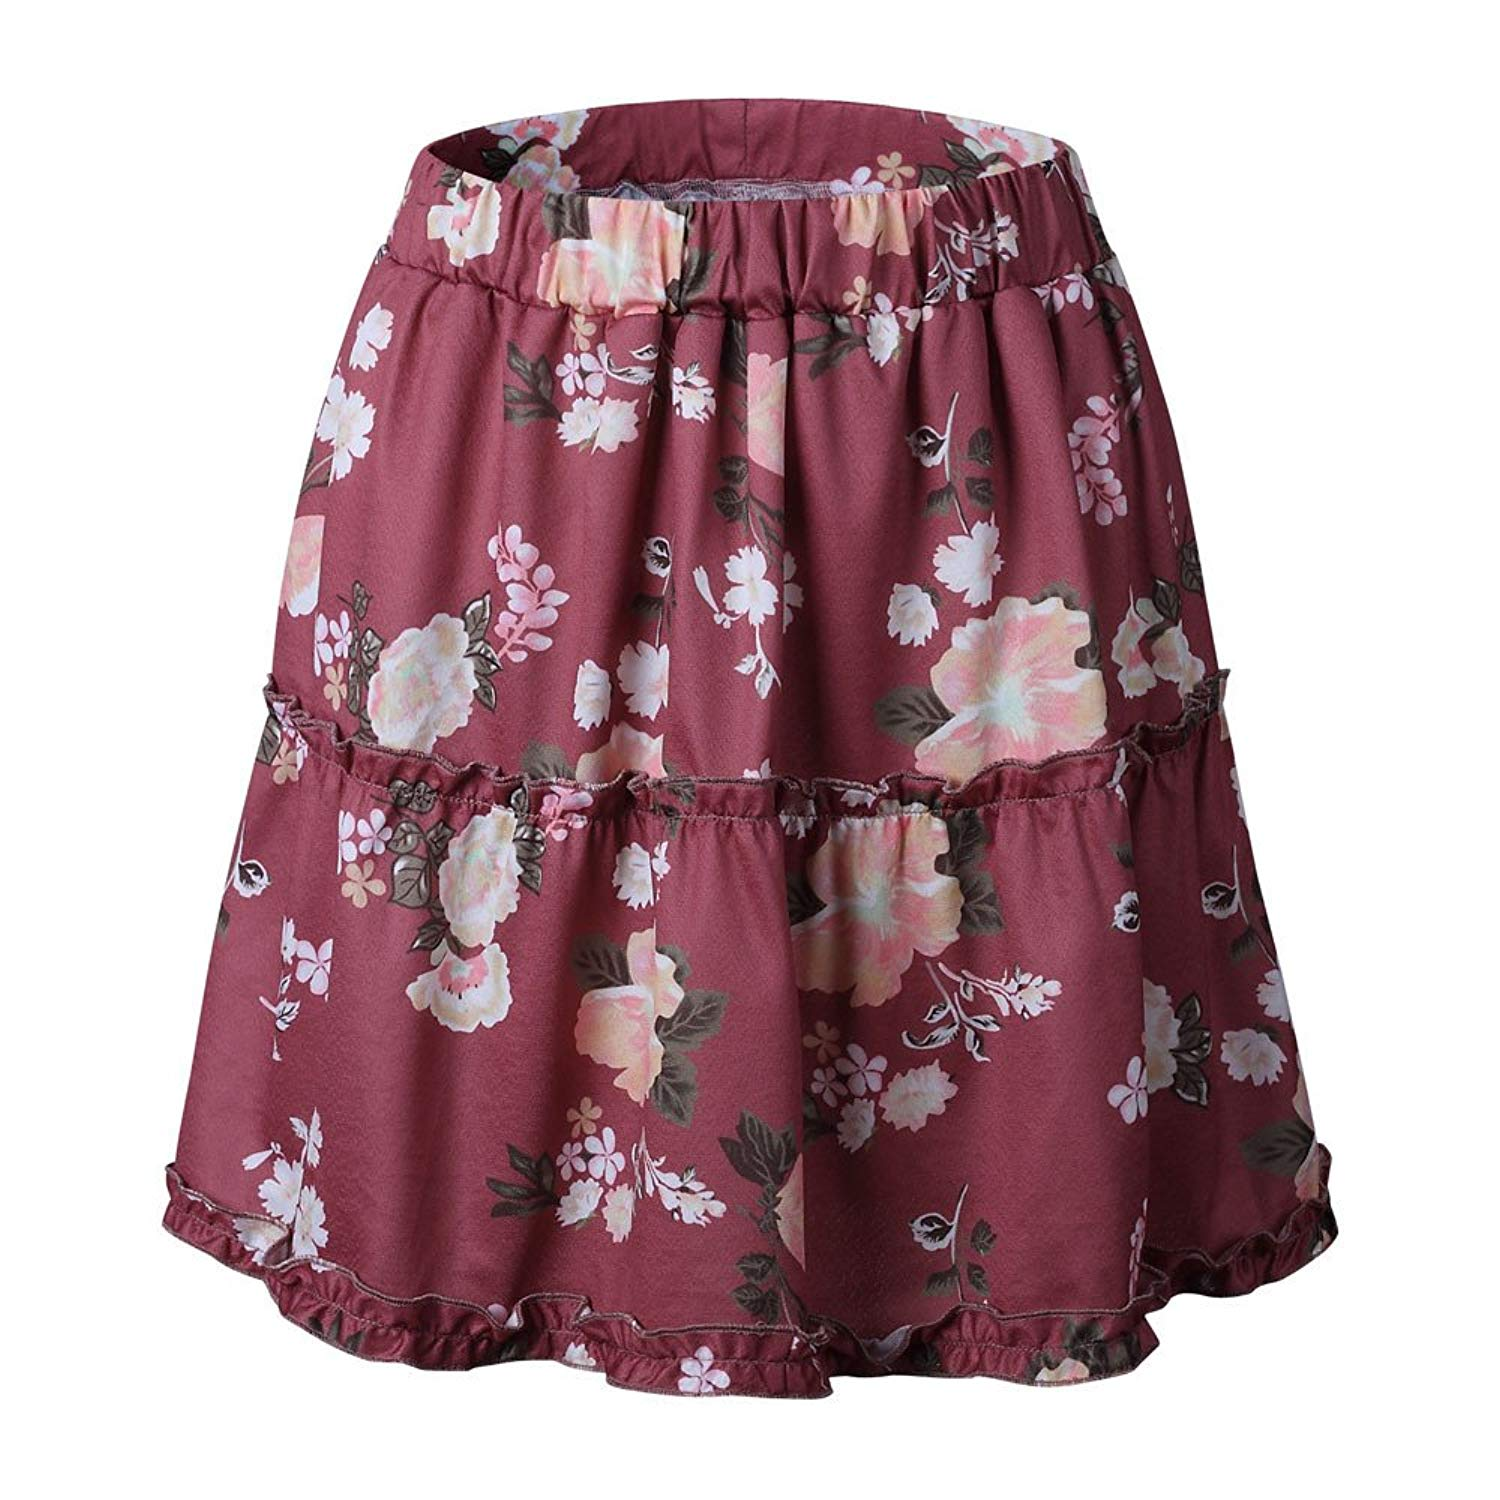 a53c9b36ea Get Quotations · Littleice Women Ladies Floral Printing Skirt Bohemian  Splice Folds Pleated Skirt Above Knee Causal Mini Skirts